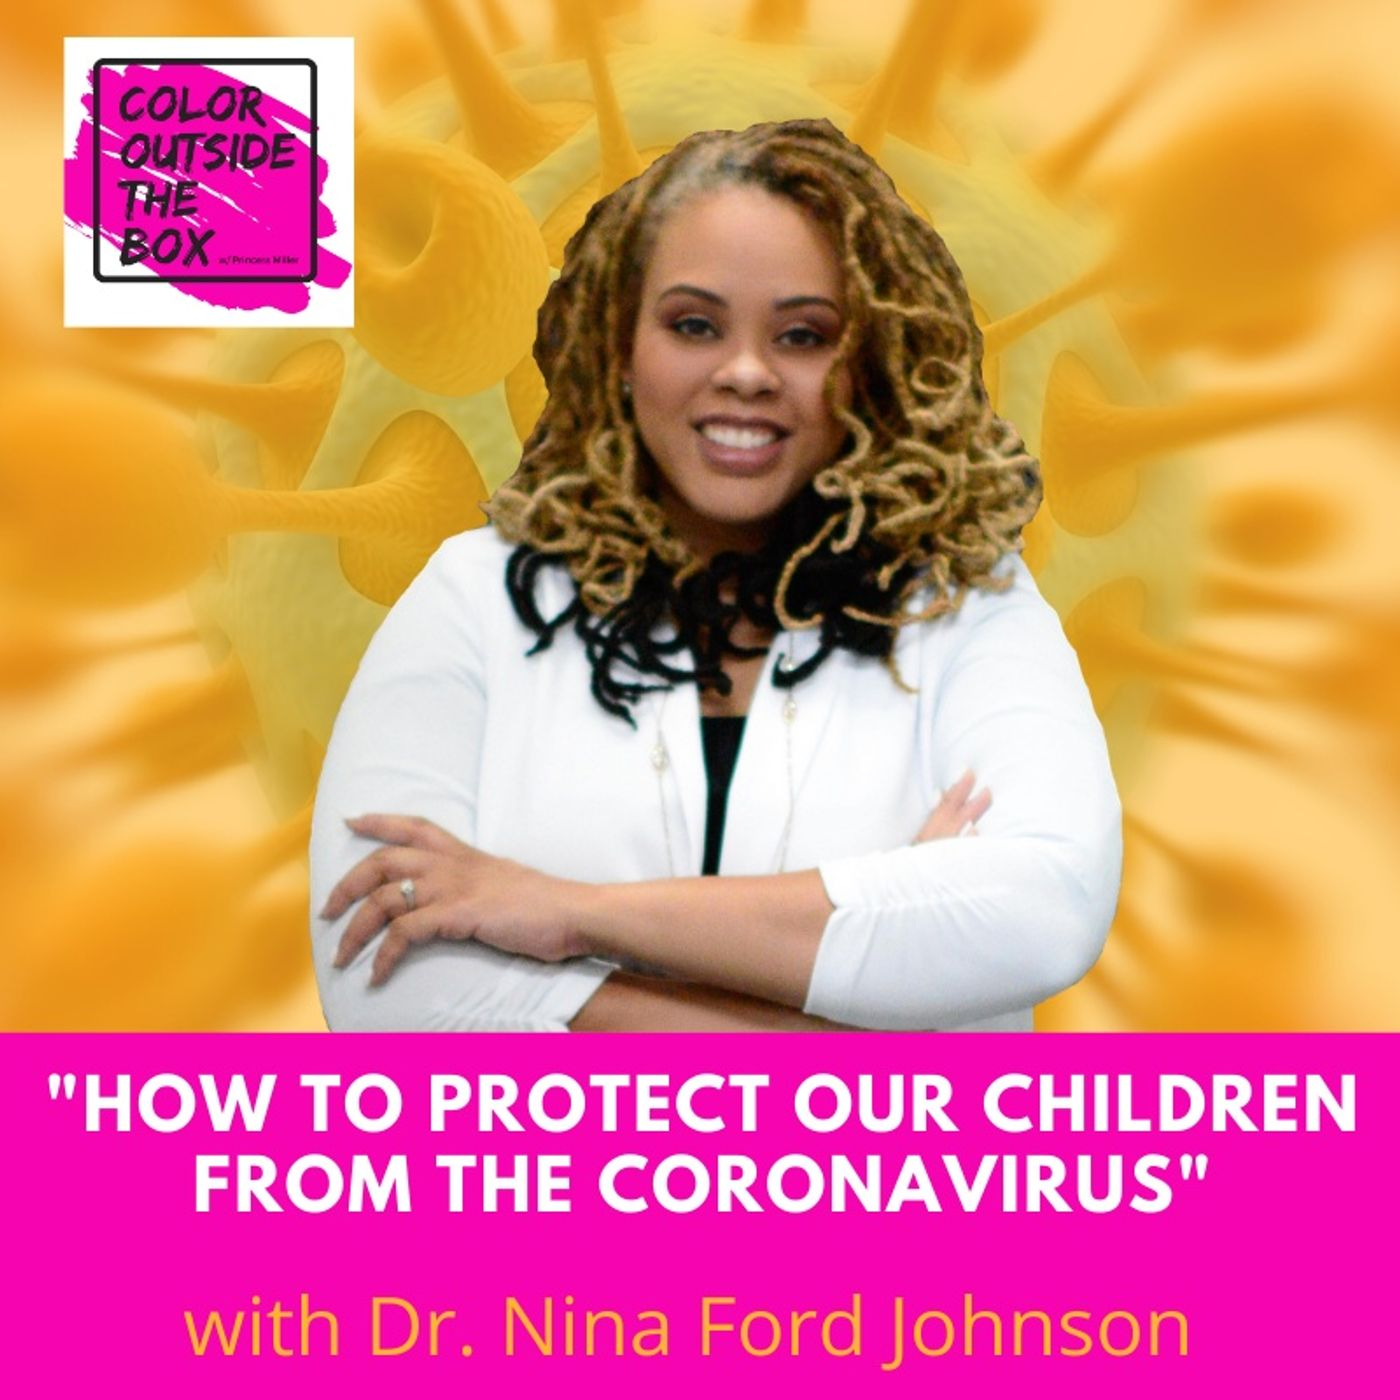 How to Protect our children from the Coronavirus with Dr. Nina Ford Johnson